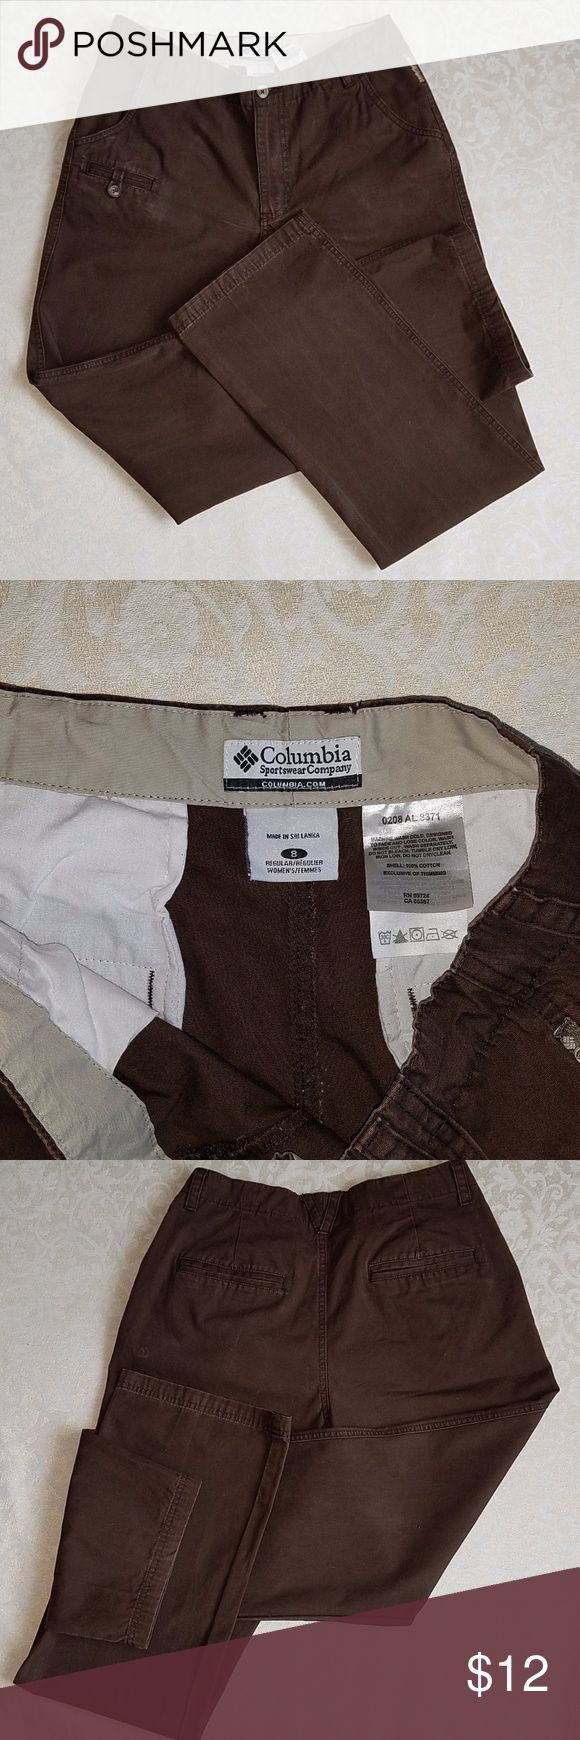 Columbia Sportswear brown casual pants Columbia Sportswear brown casual pants.  Size 8 Regular.  Waist is 27 inches.  Inseam is 31 inches.  Just a great pair of pants for Fall, very comfortable with just the right amount of worn cuffs.  (100080) Columbia Pants Boot Cut & Flare